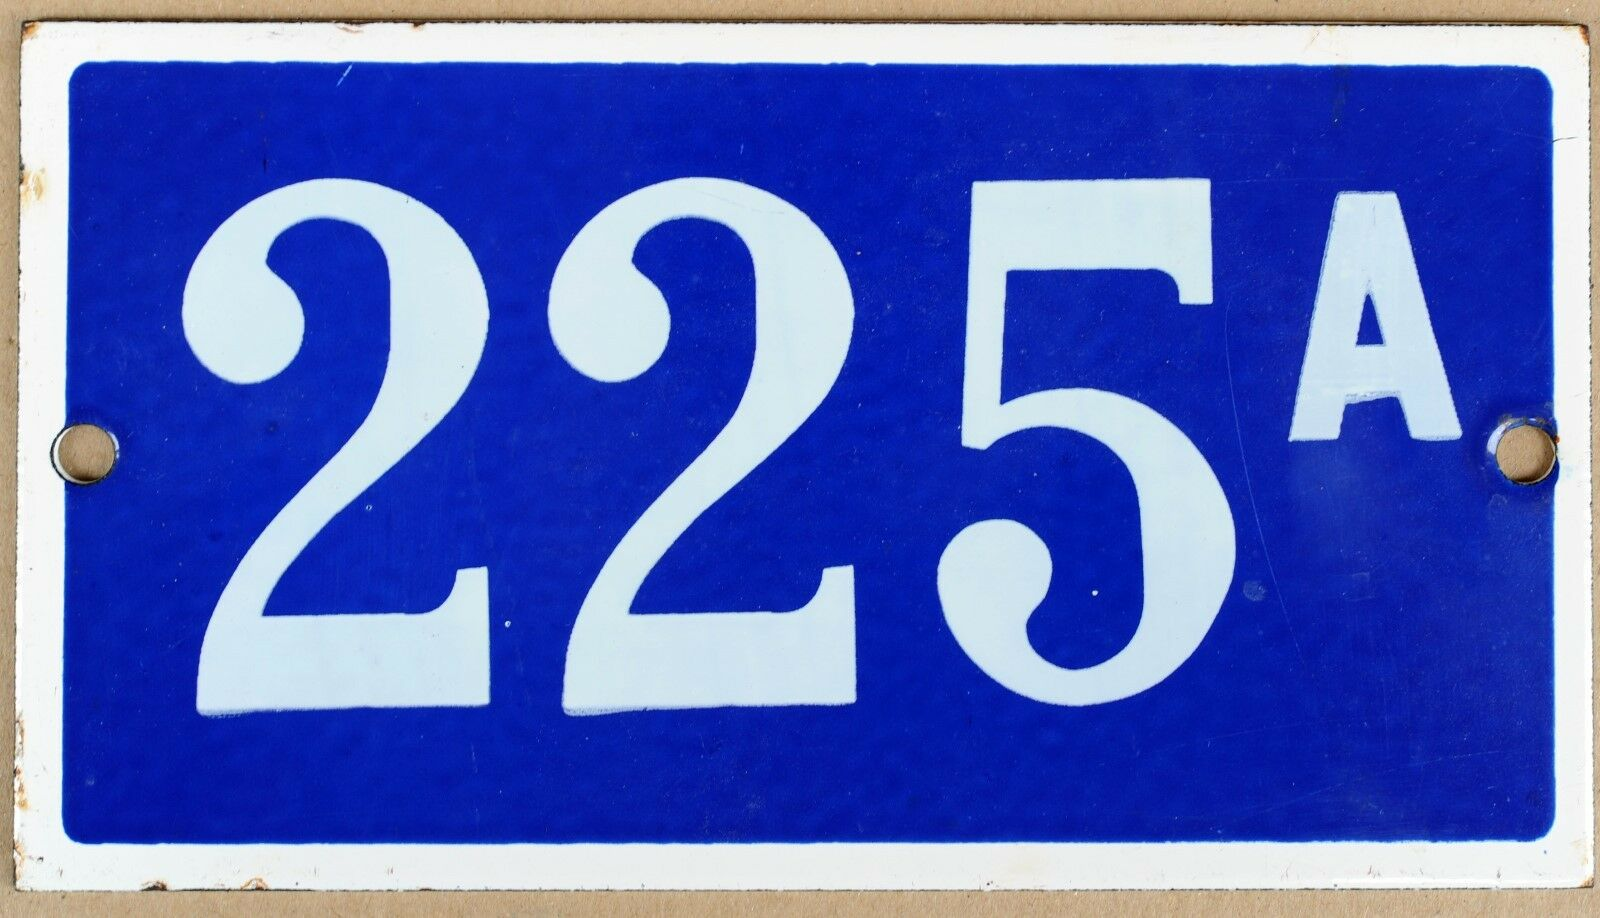 Old blue French house number door gate plate plaque enamel metal sign VGC 225 A